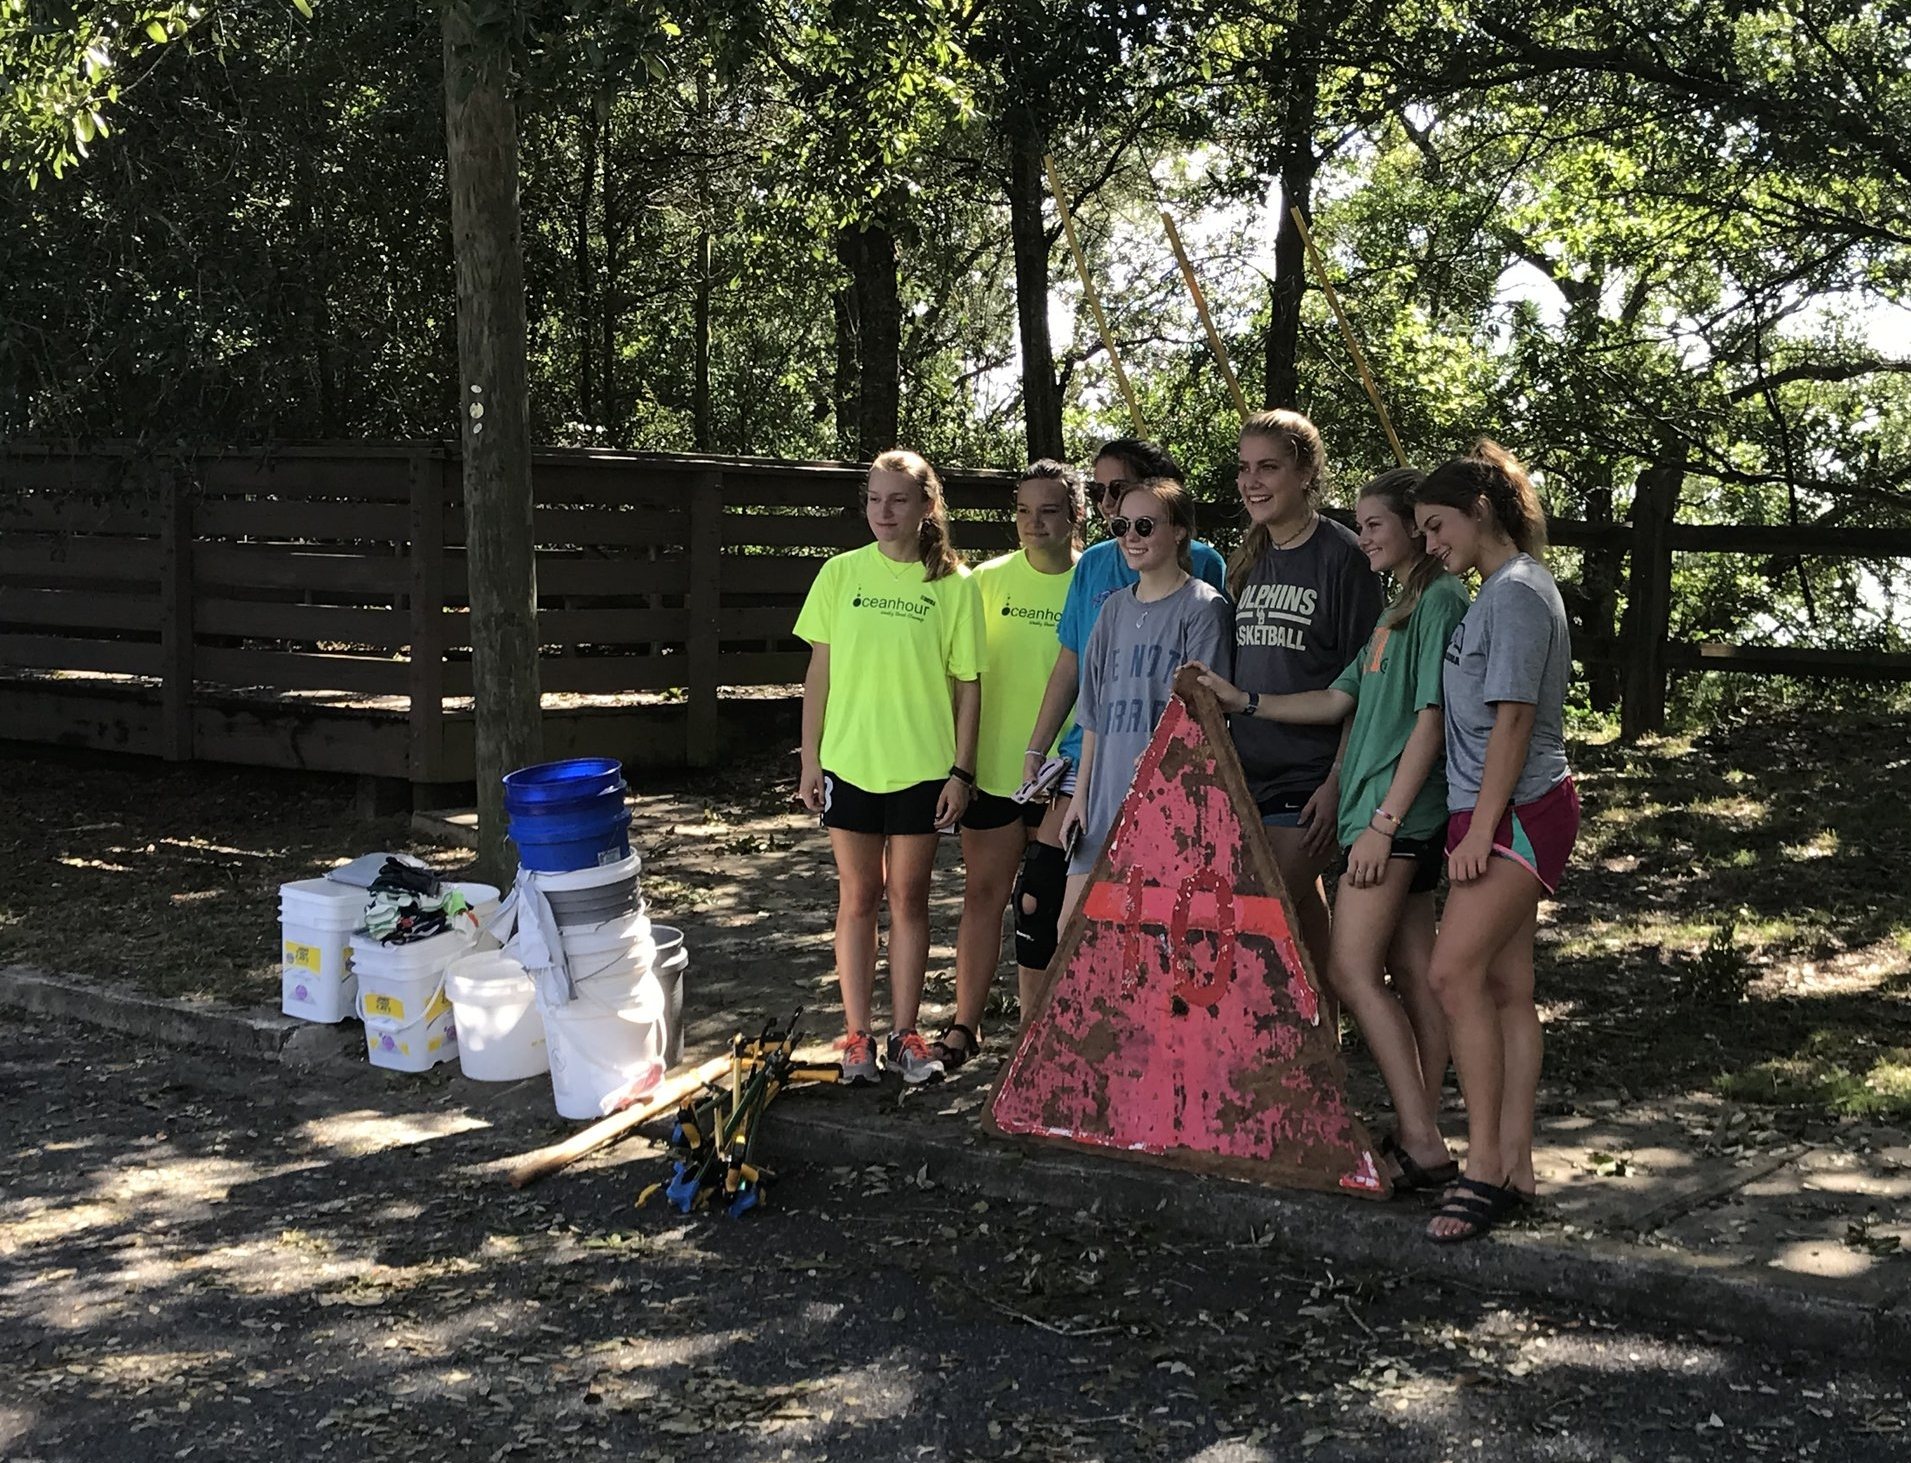 - Today's 59 volunteers worked hard to put 367 lbs of trash (a lot of styrofoam/empty bottles) into 3x13, 4x33 and 4x40 USG trash bags